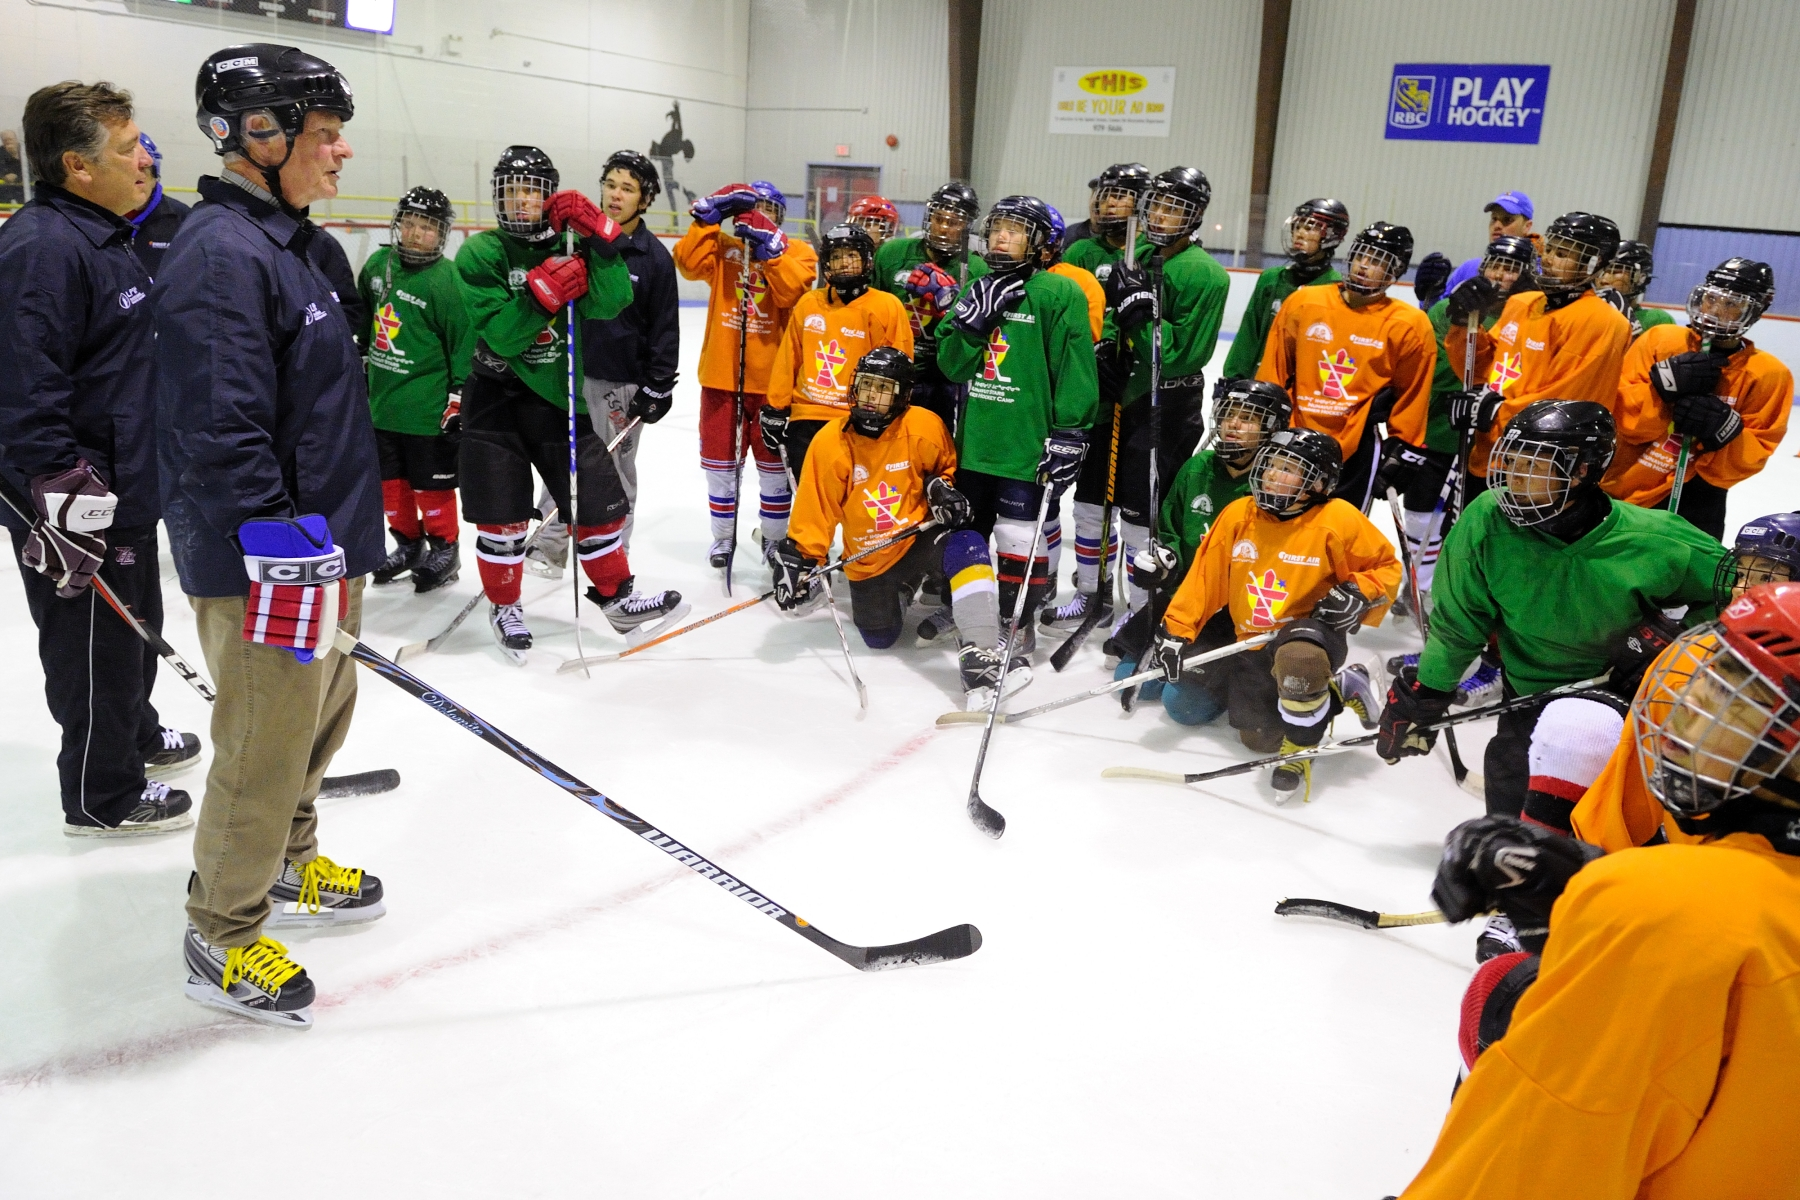 His Excellency met with the Nunavut Stars Hockey Camp participants (aged 15 to 19) during an on-ice training session at the Arnaitok Arena in Iqaluit.